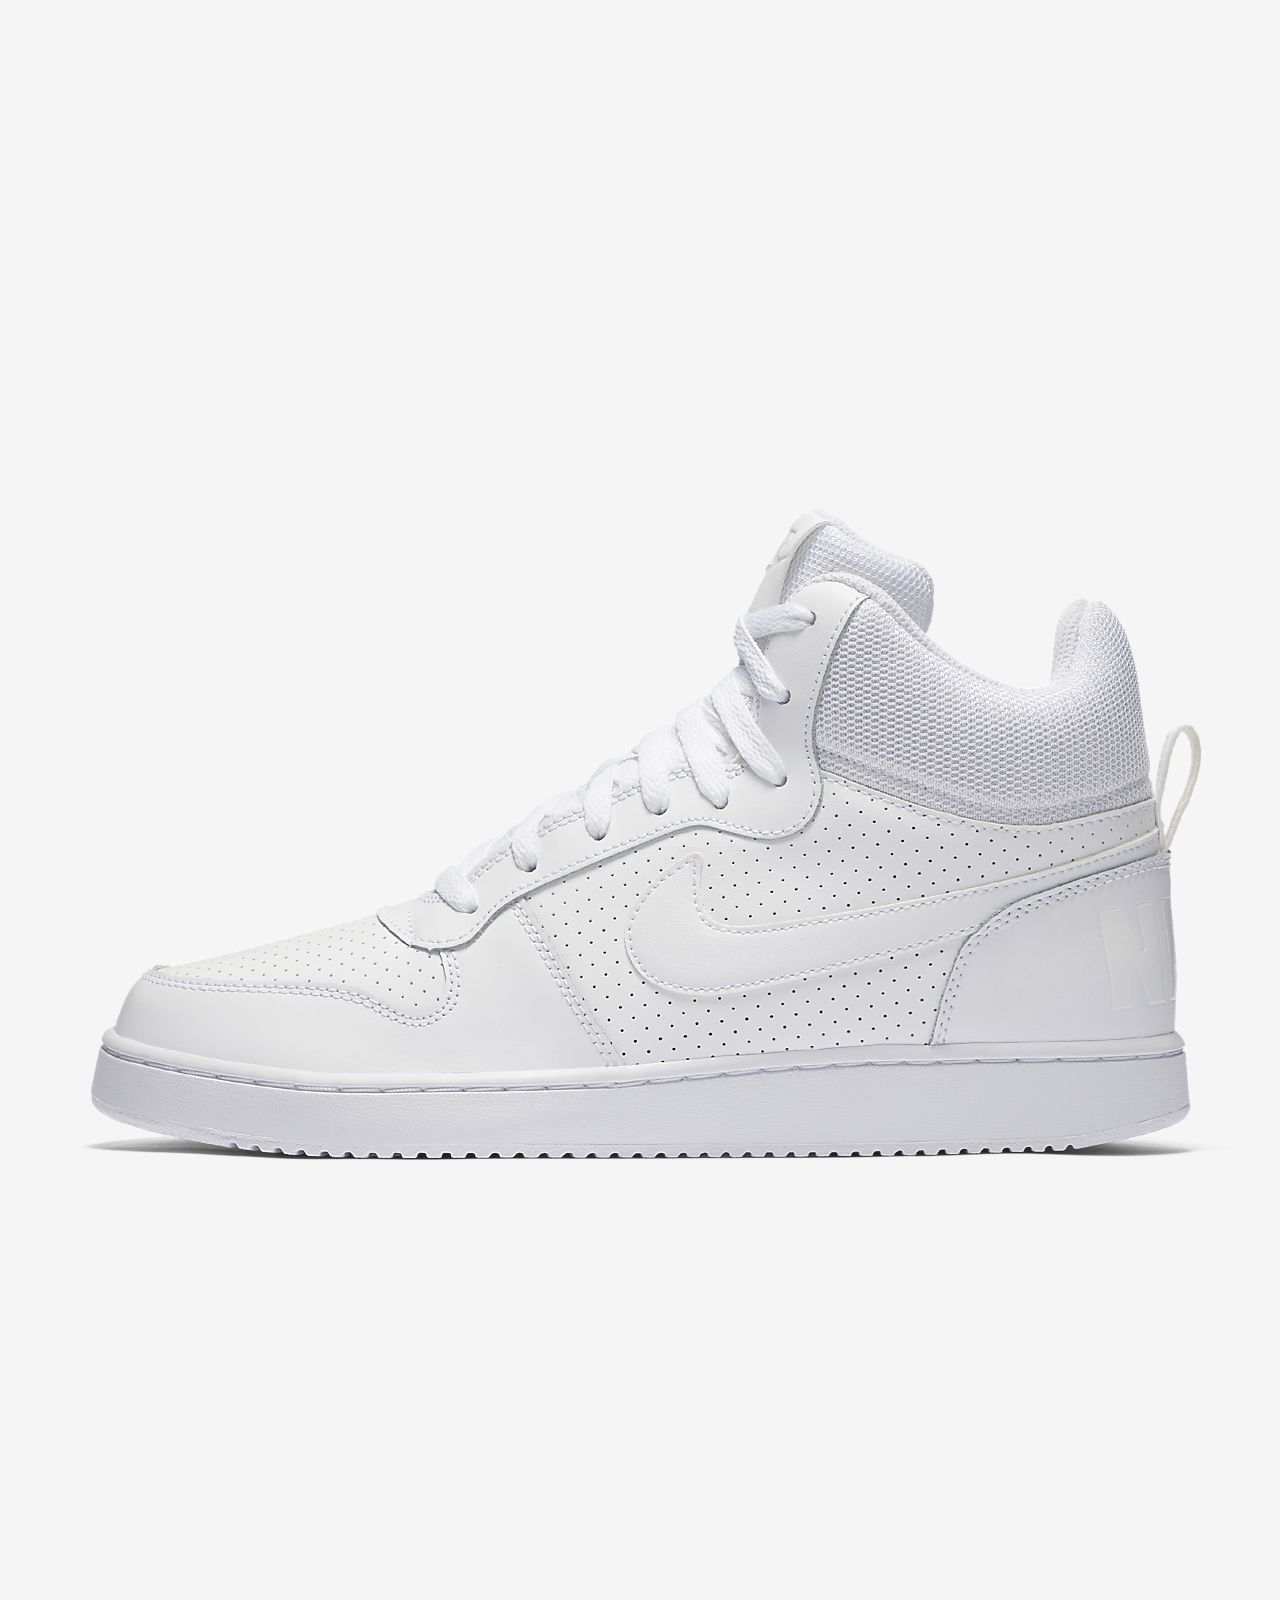 Le Nike AIR FORCE 1 MID '07 disponible Tutto Sport